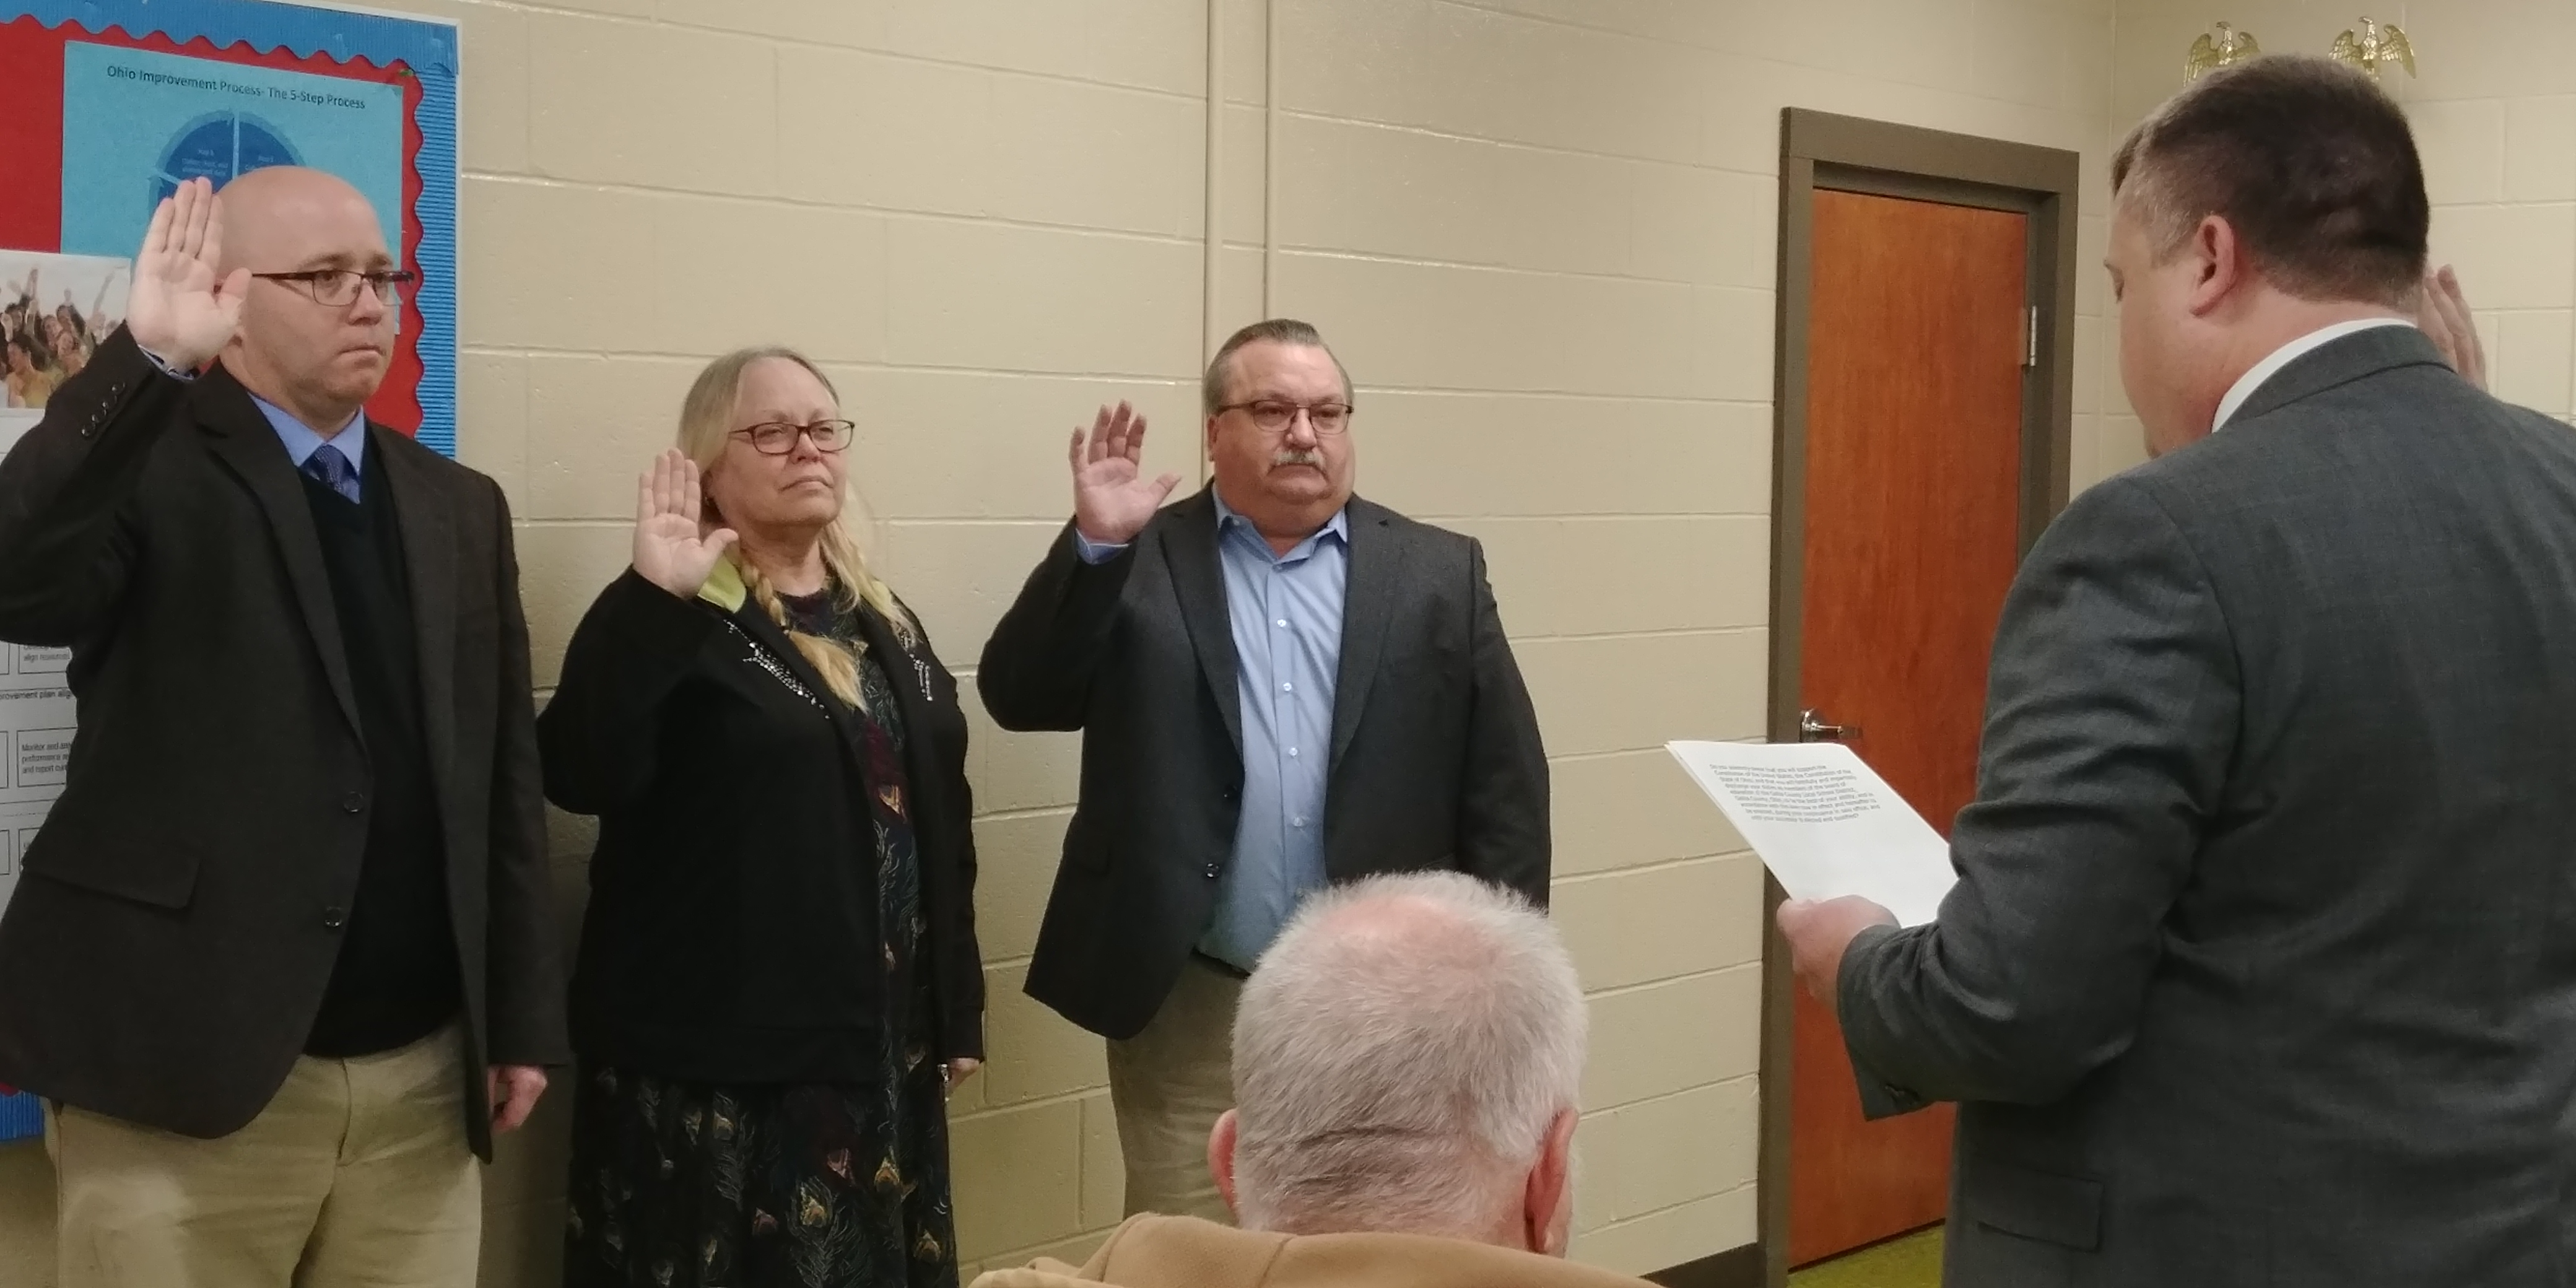 Swearing In Cermony